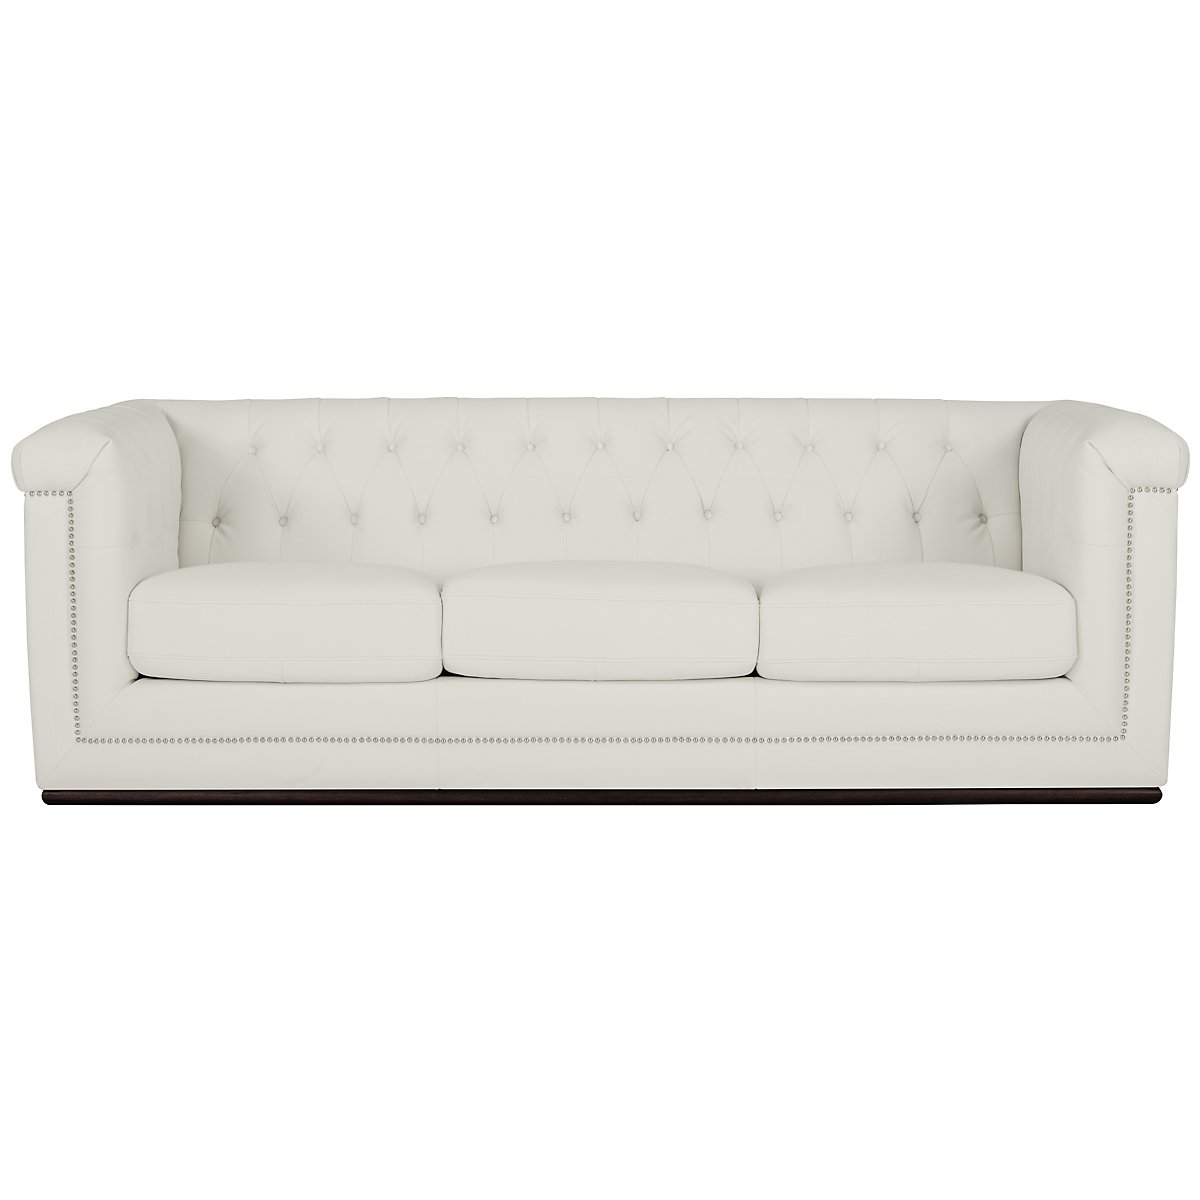 Awesome Blair White Microfiber Sofa Living Room Sofas City Unemploymentrelief Wooden Chair Designs For Living Room Unemploymentrelieforg